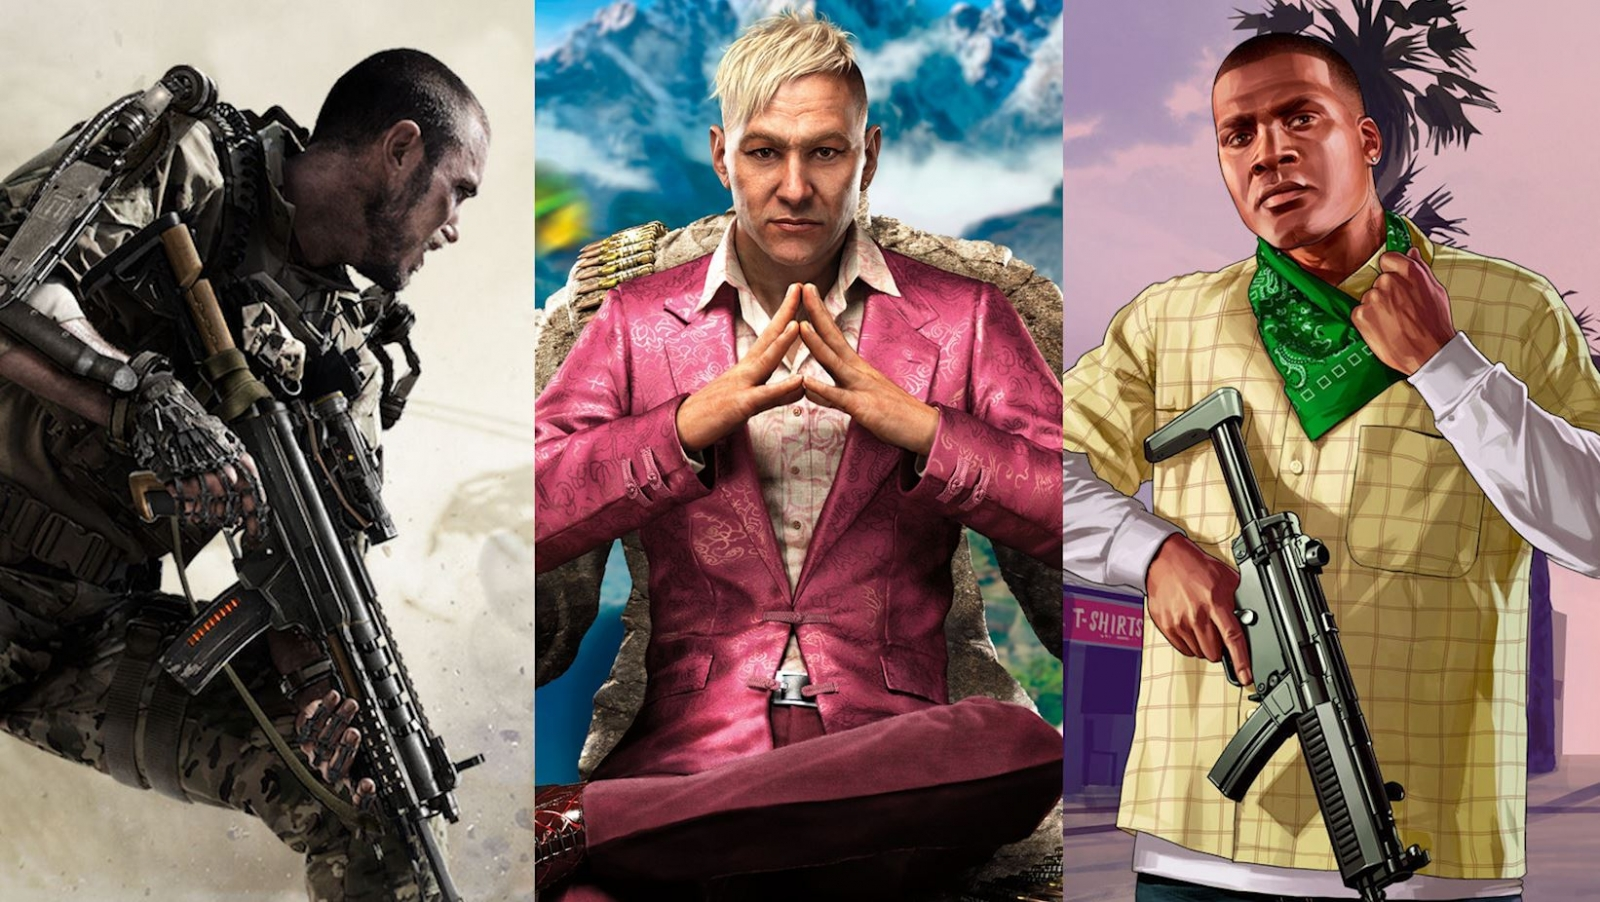 Full Far Cry 4 Map Reveals The Regions Of Kyrat: Best Video Games For Kids This Christmas: A Parents' Guide